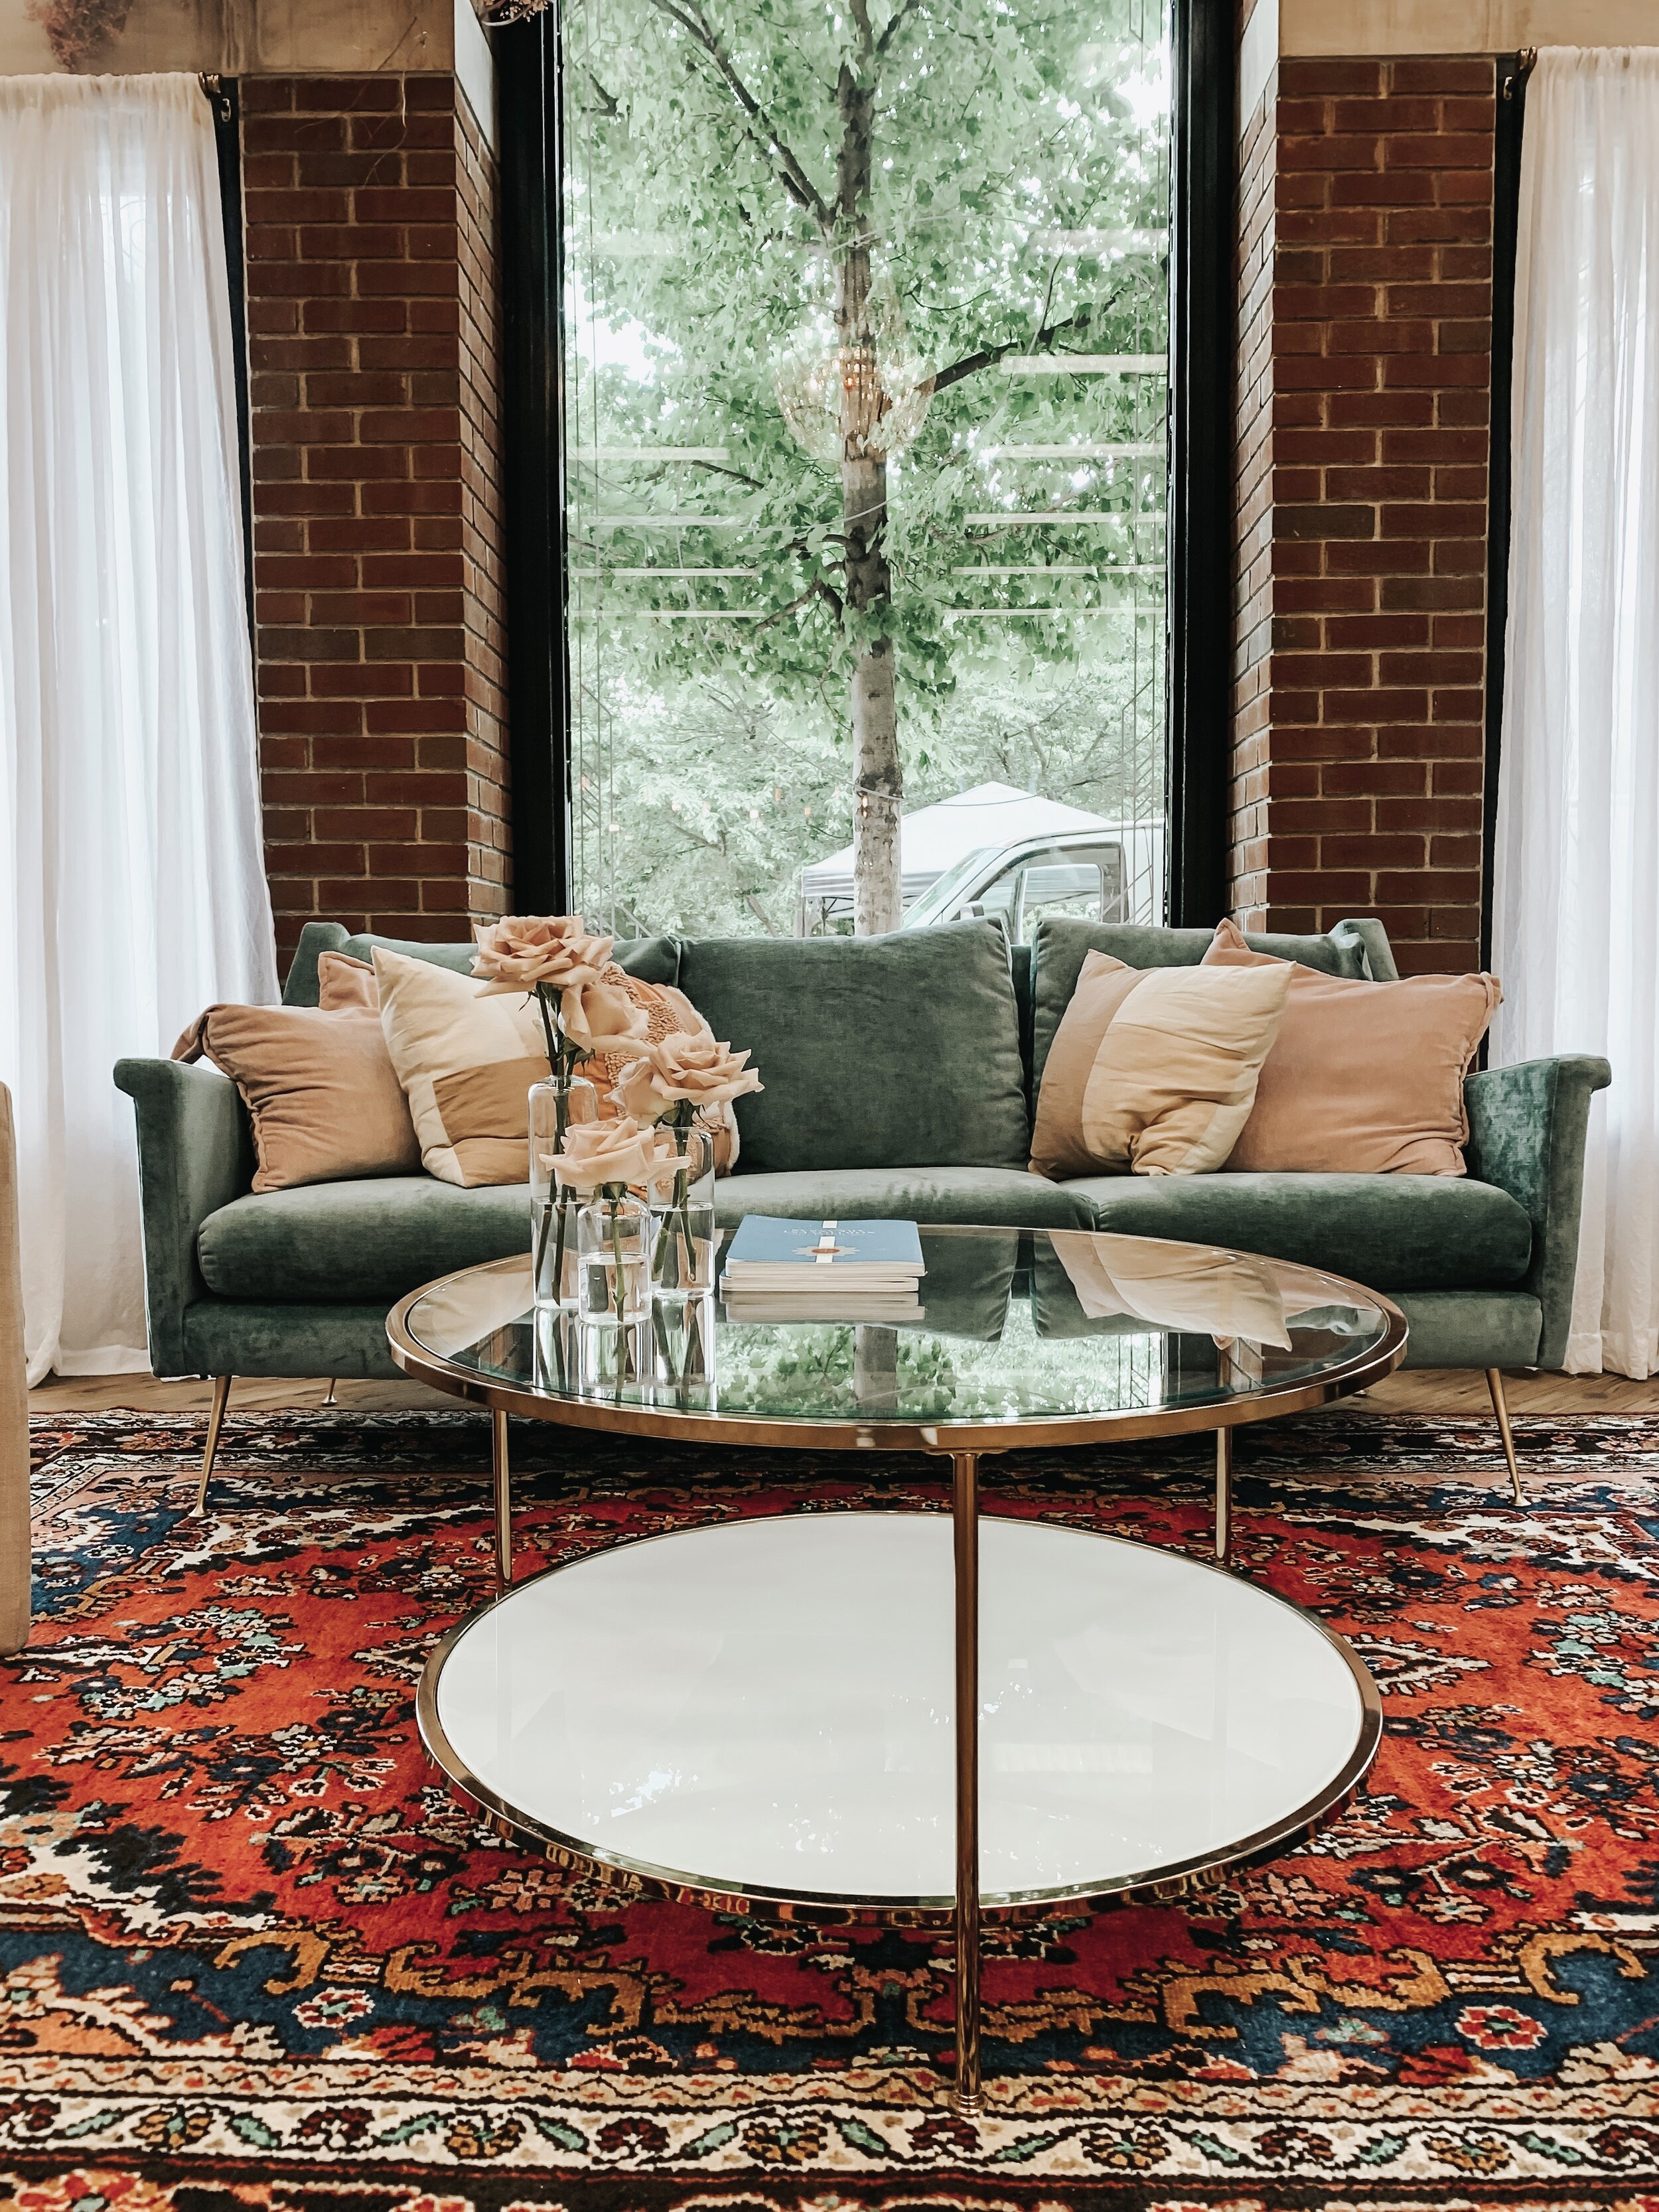 5 Things NOT to do When Staging| Lissette Ellerbe | LRB Design Studios |Virtual Home Staging